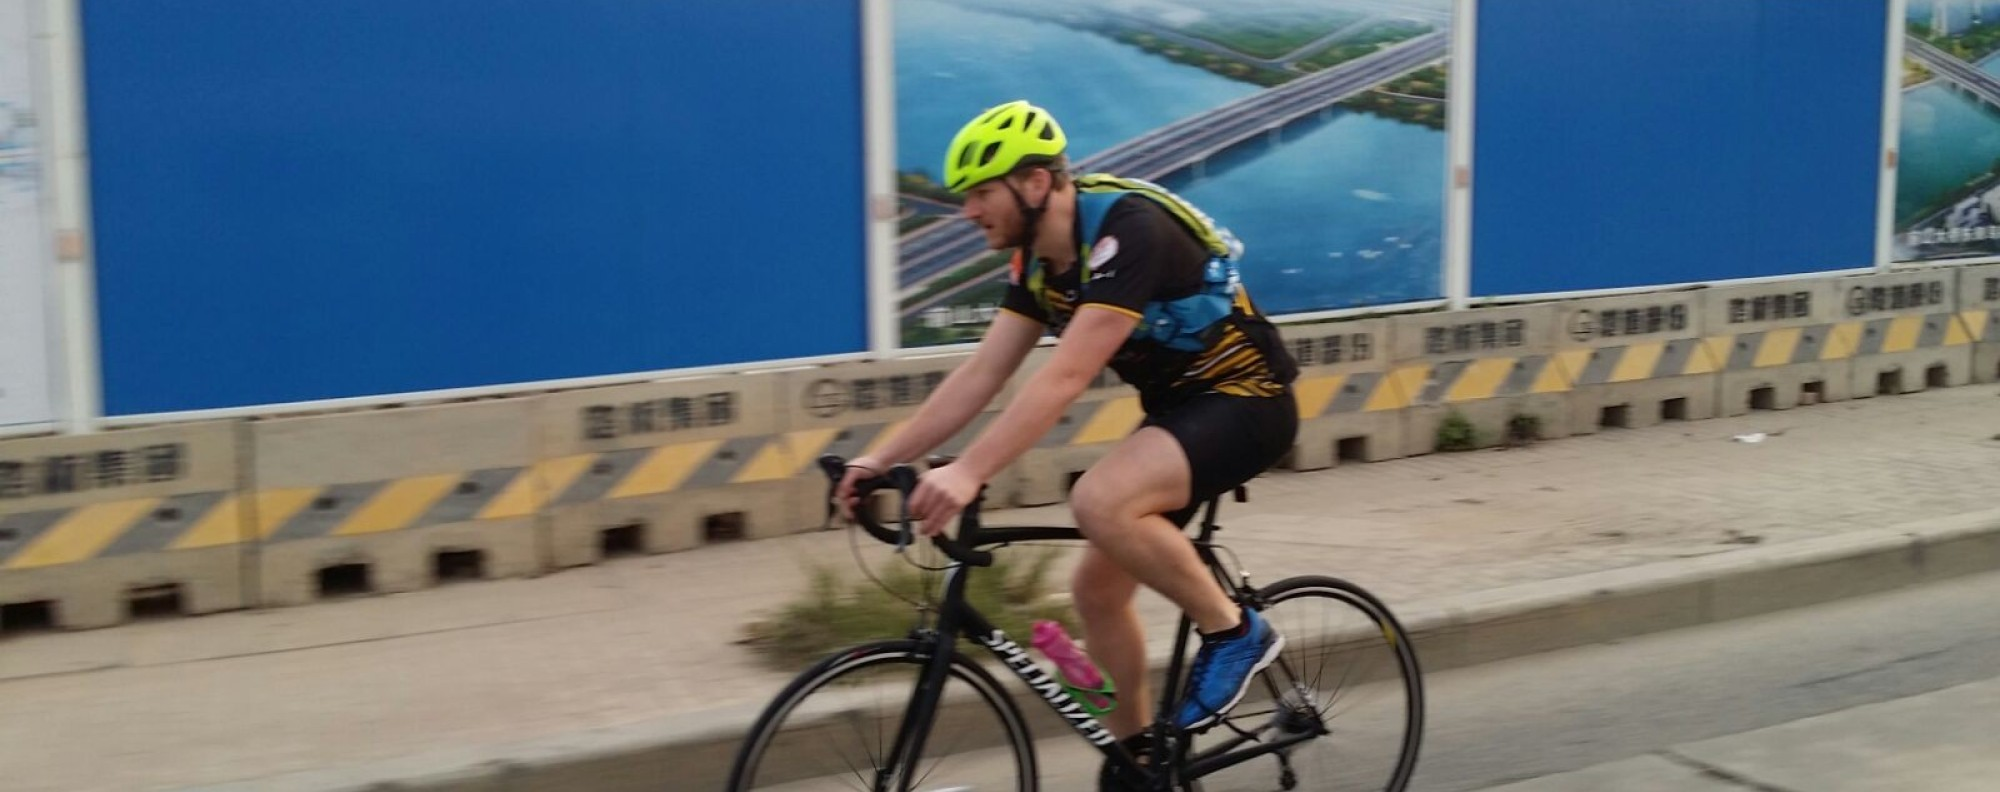 Cycling 160km through China, from Zhuhai to Chikan. Photos: Mad Dogs